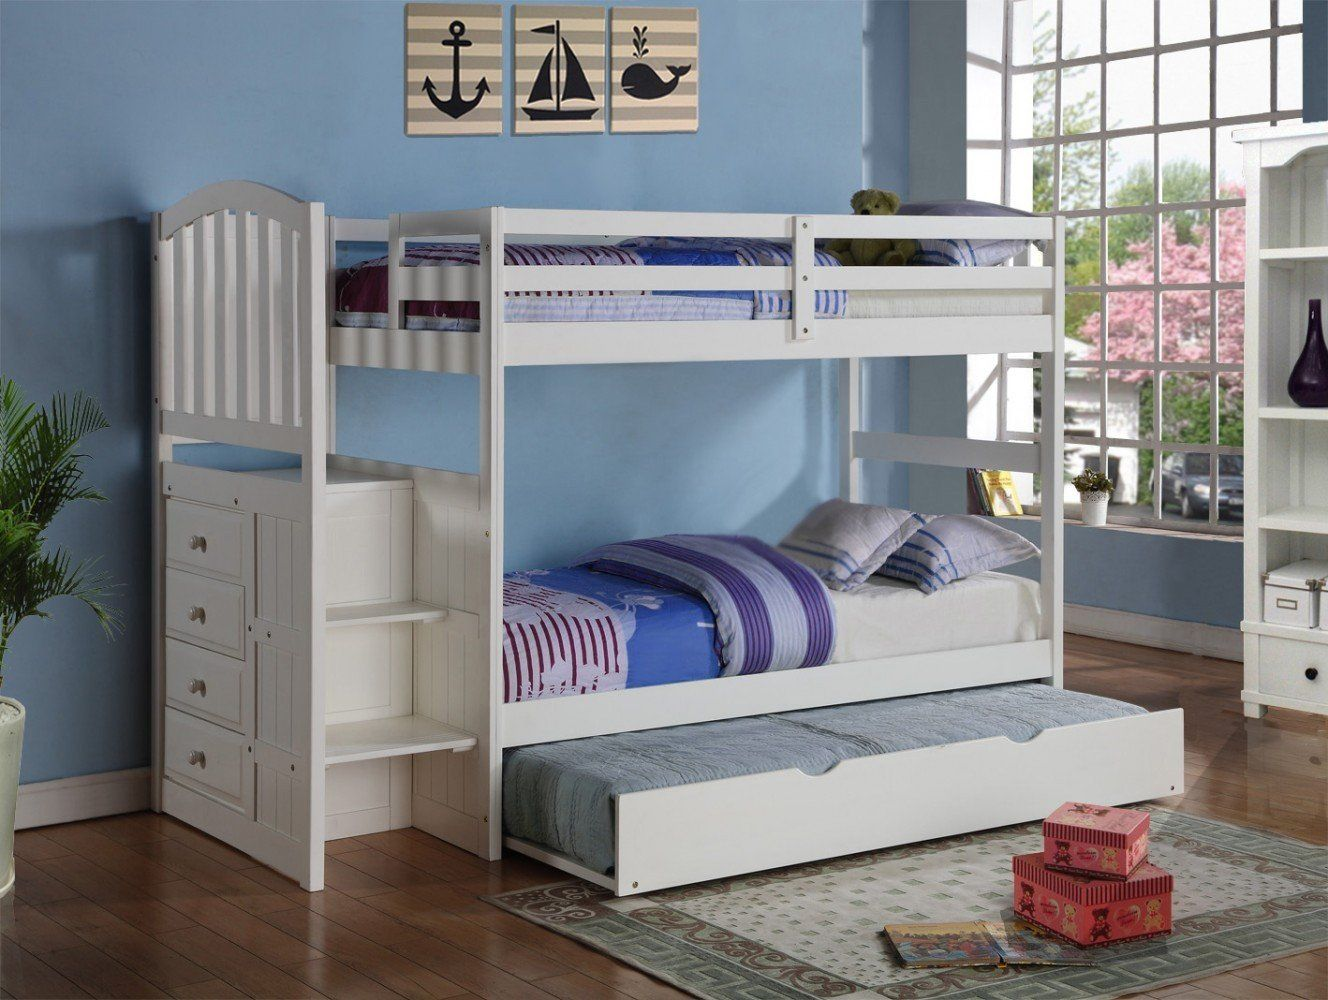 sadie white bunk bed bunk bed dresser bookshelf and toddler bunk beds